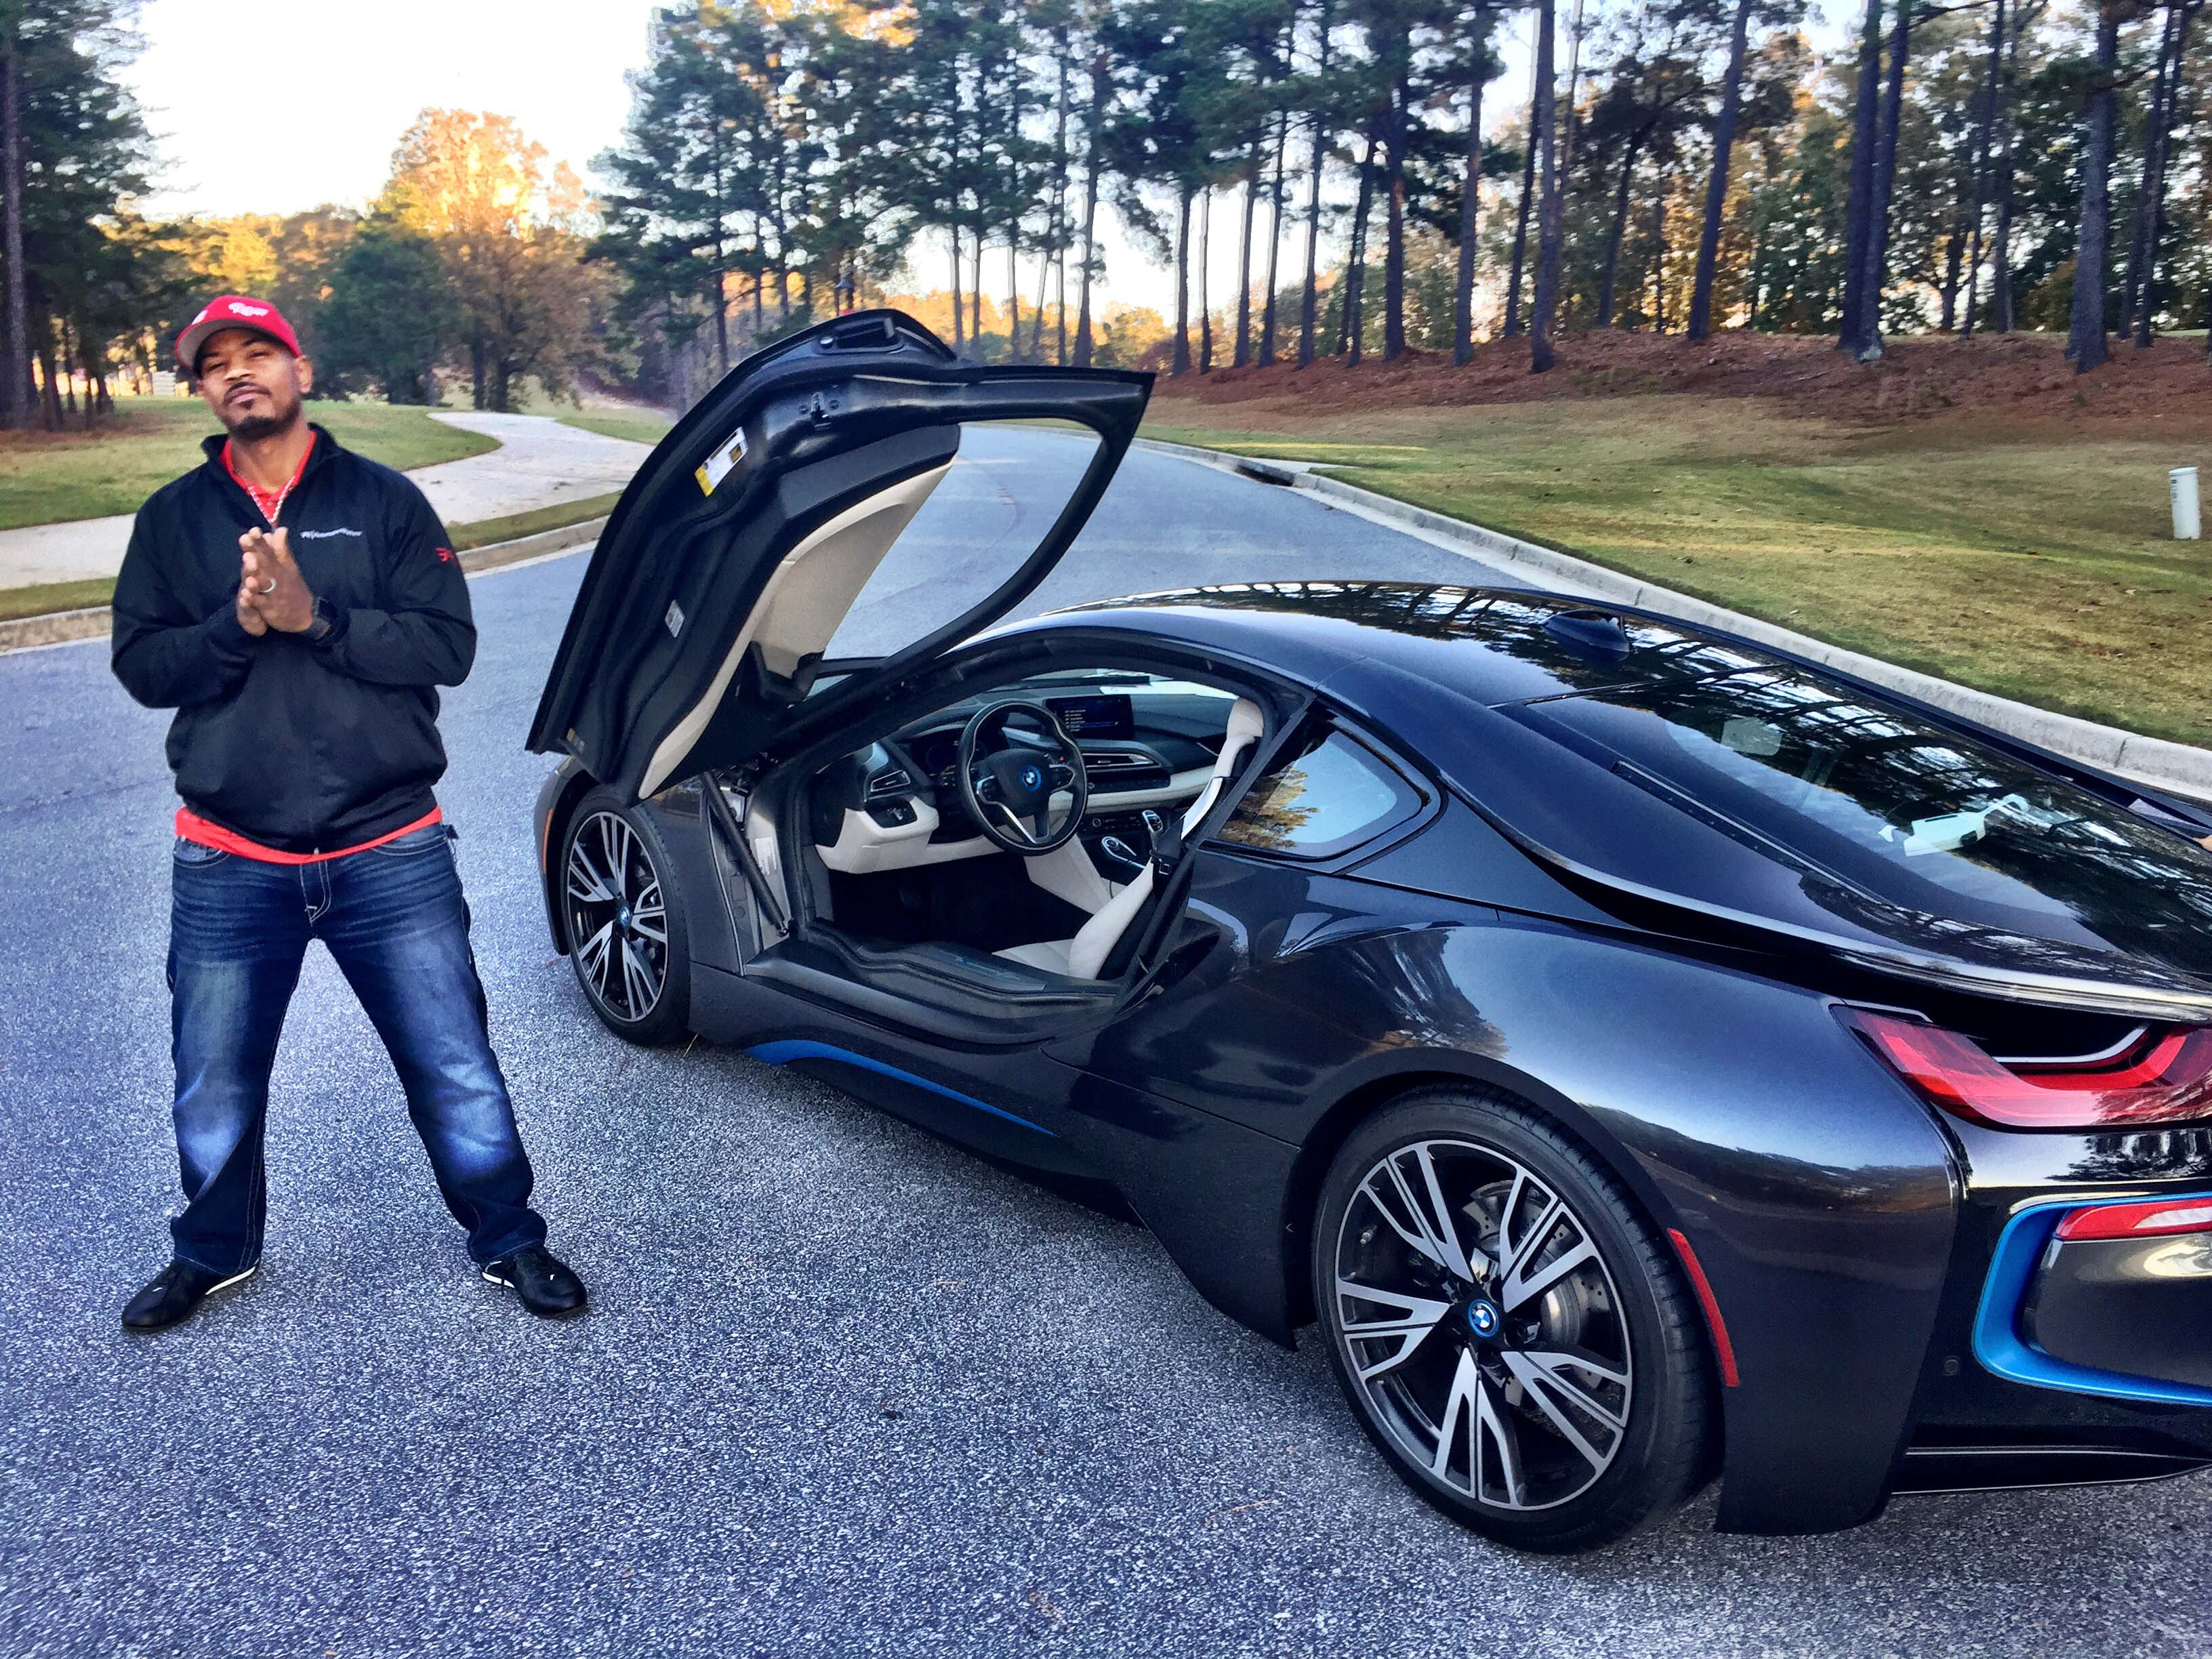 And I Cant Forget About The Reunion With My Georgia Tech Football Teammate Roommate Life Brother Nate Perryman Who Loves His Electric Rides